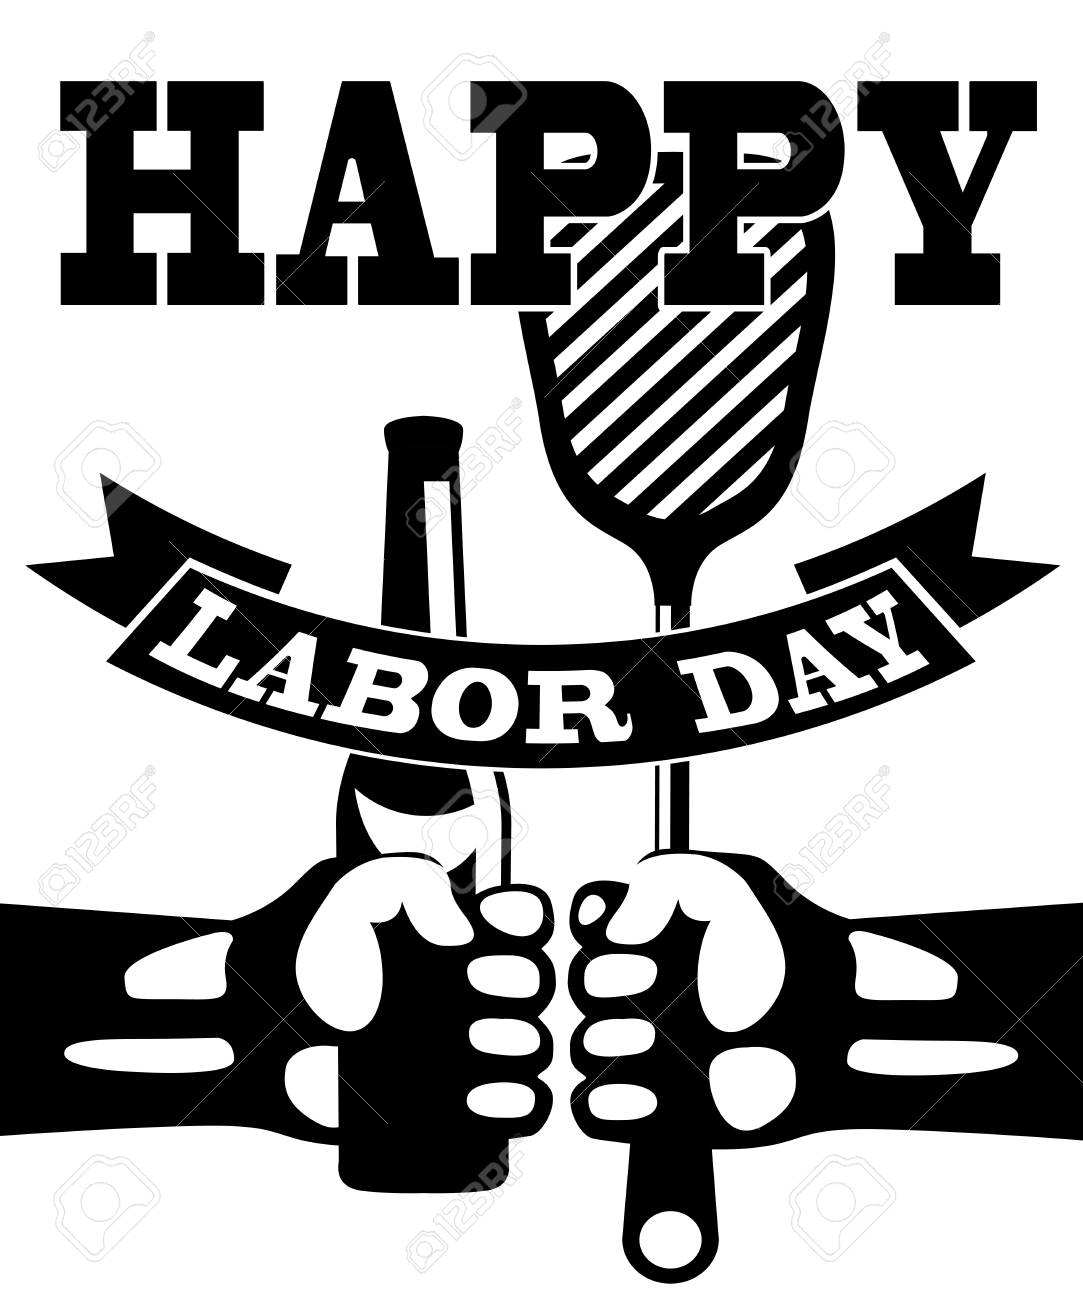 Labor Day Clip Art Black And White , Free Transparent Clipart - ClipartKey